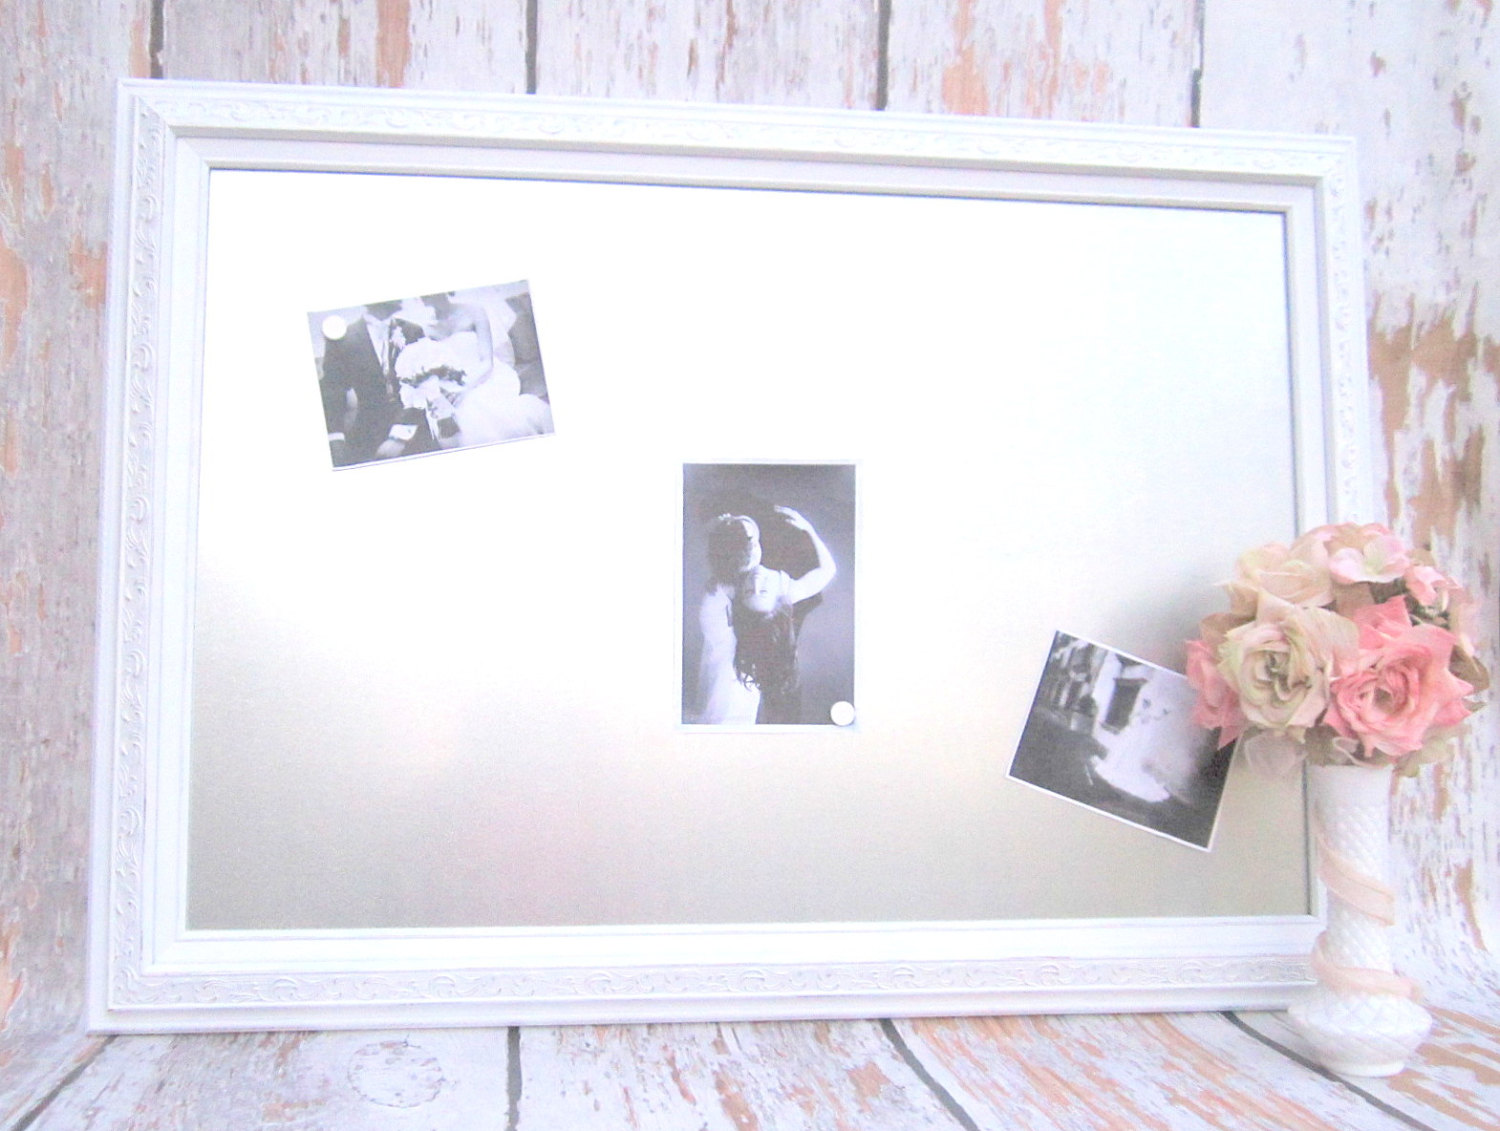 Classy decorative magnetic board for photos and memos together with attractive flower vase